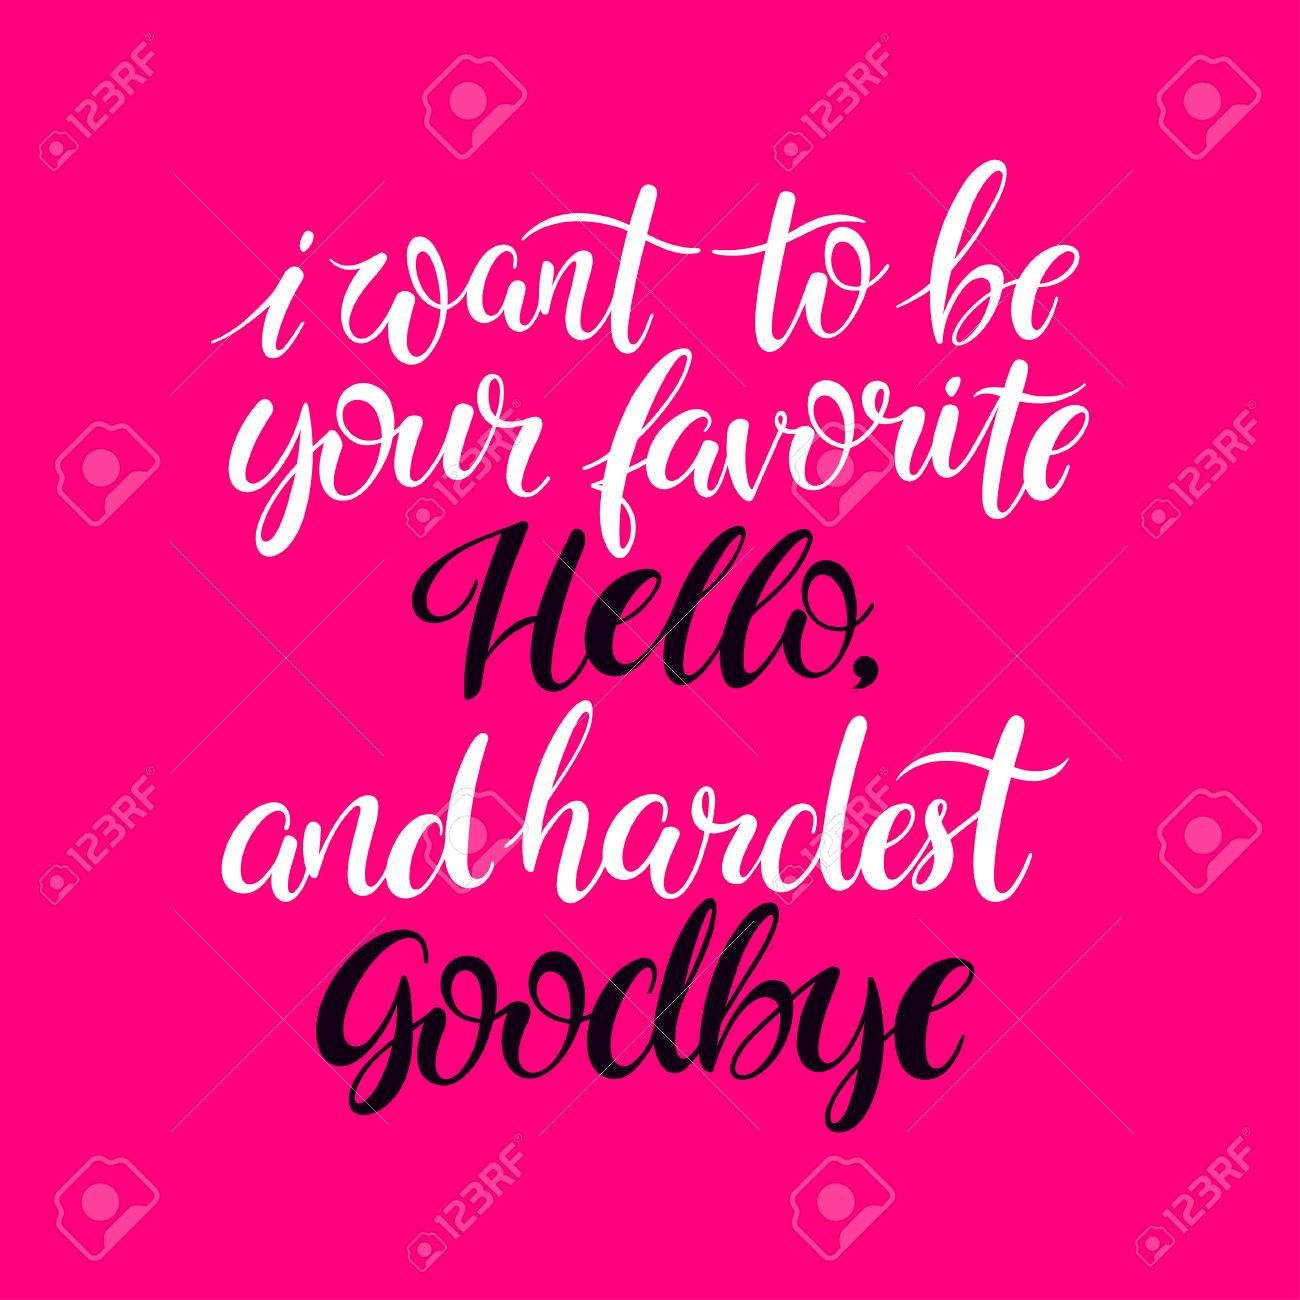 I want to be your favorite hello and hardest goodbye beautiful i want to be your favorite hello and hardest goodbye beautiful greeting card for valentines kristyandbryce Image collections